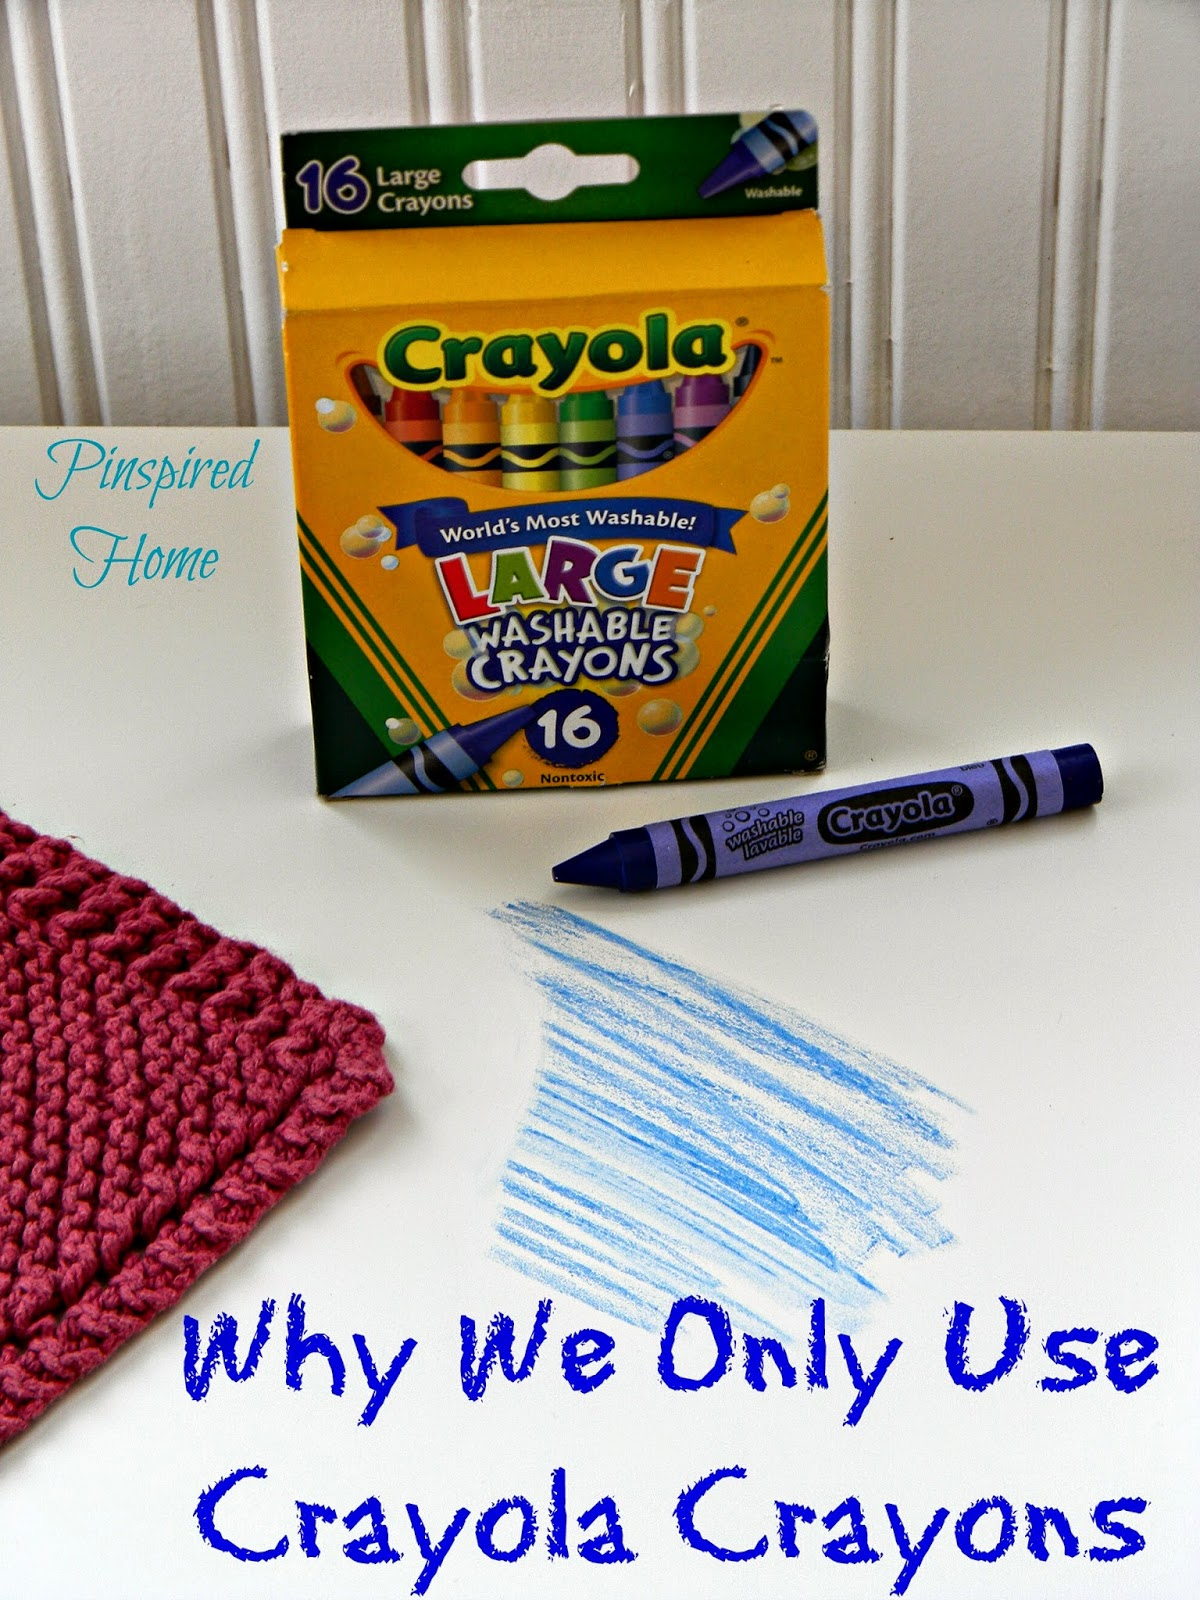 http://pinspiredhome.blogspot.com/2014/05/why-we-only-use-crayola-crayons-tips.html